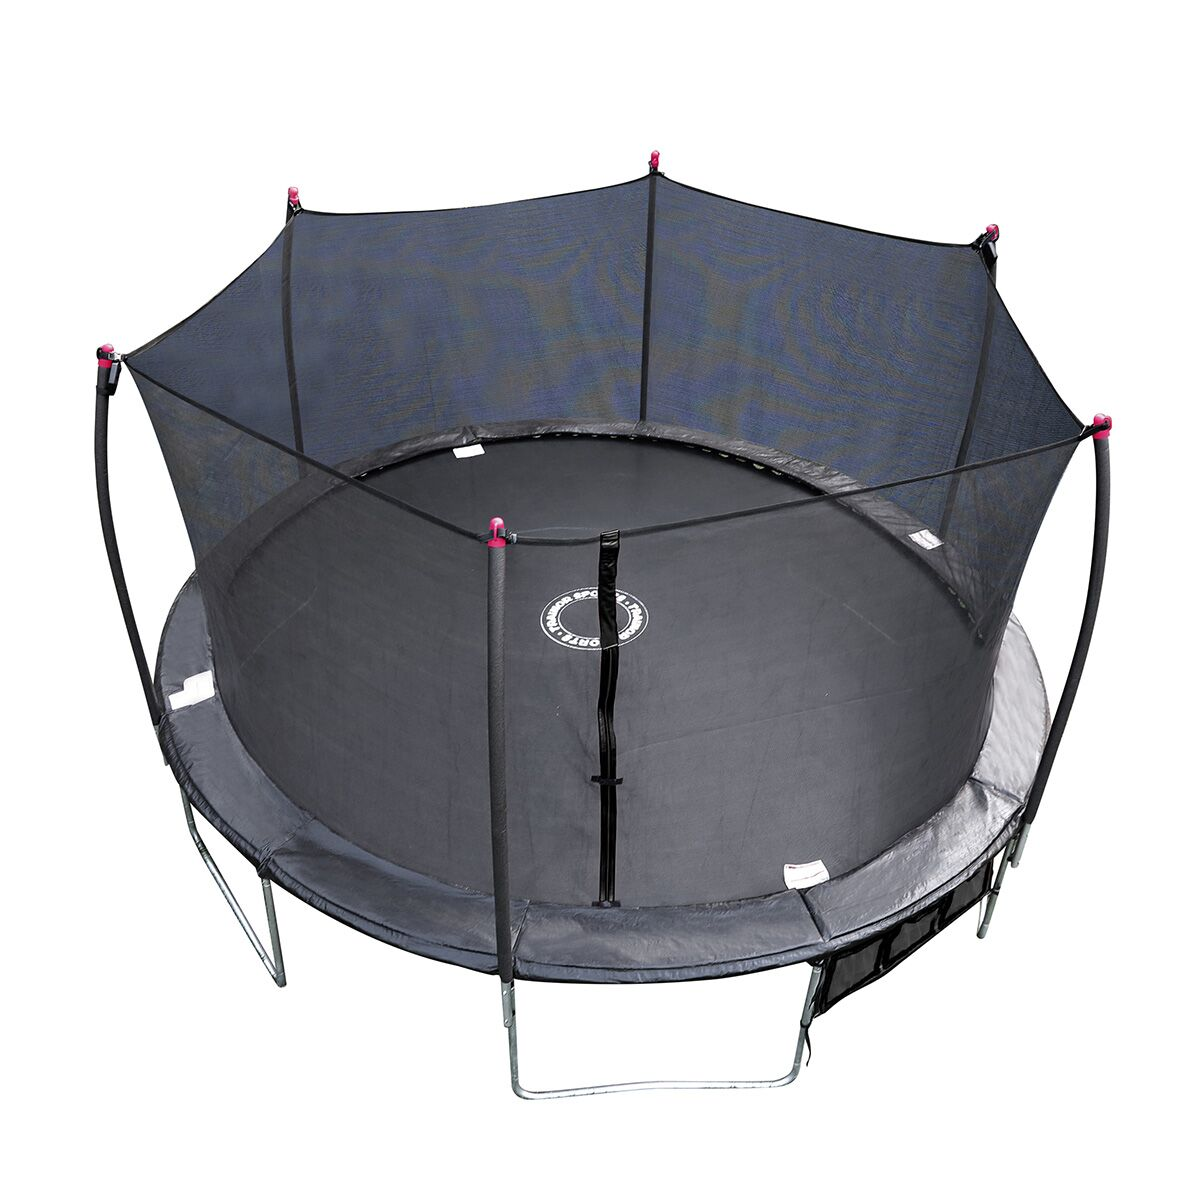 Trainor Sports 17' Oval Trampoline & Enclosure Combo w/ Shooter Game